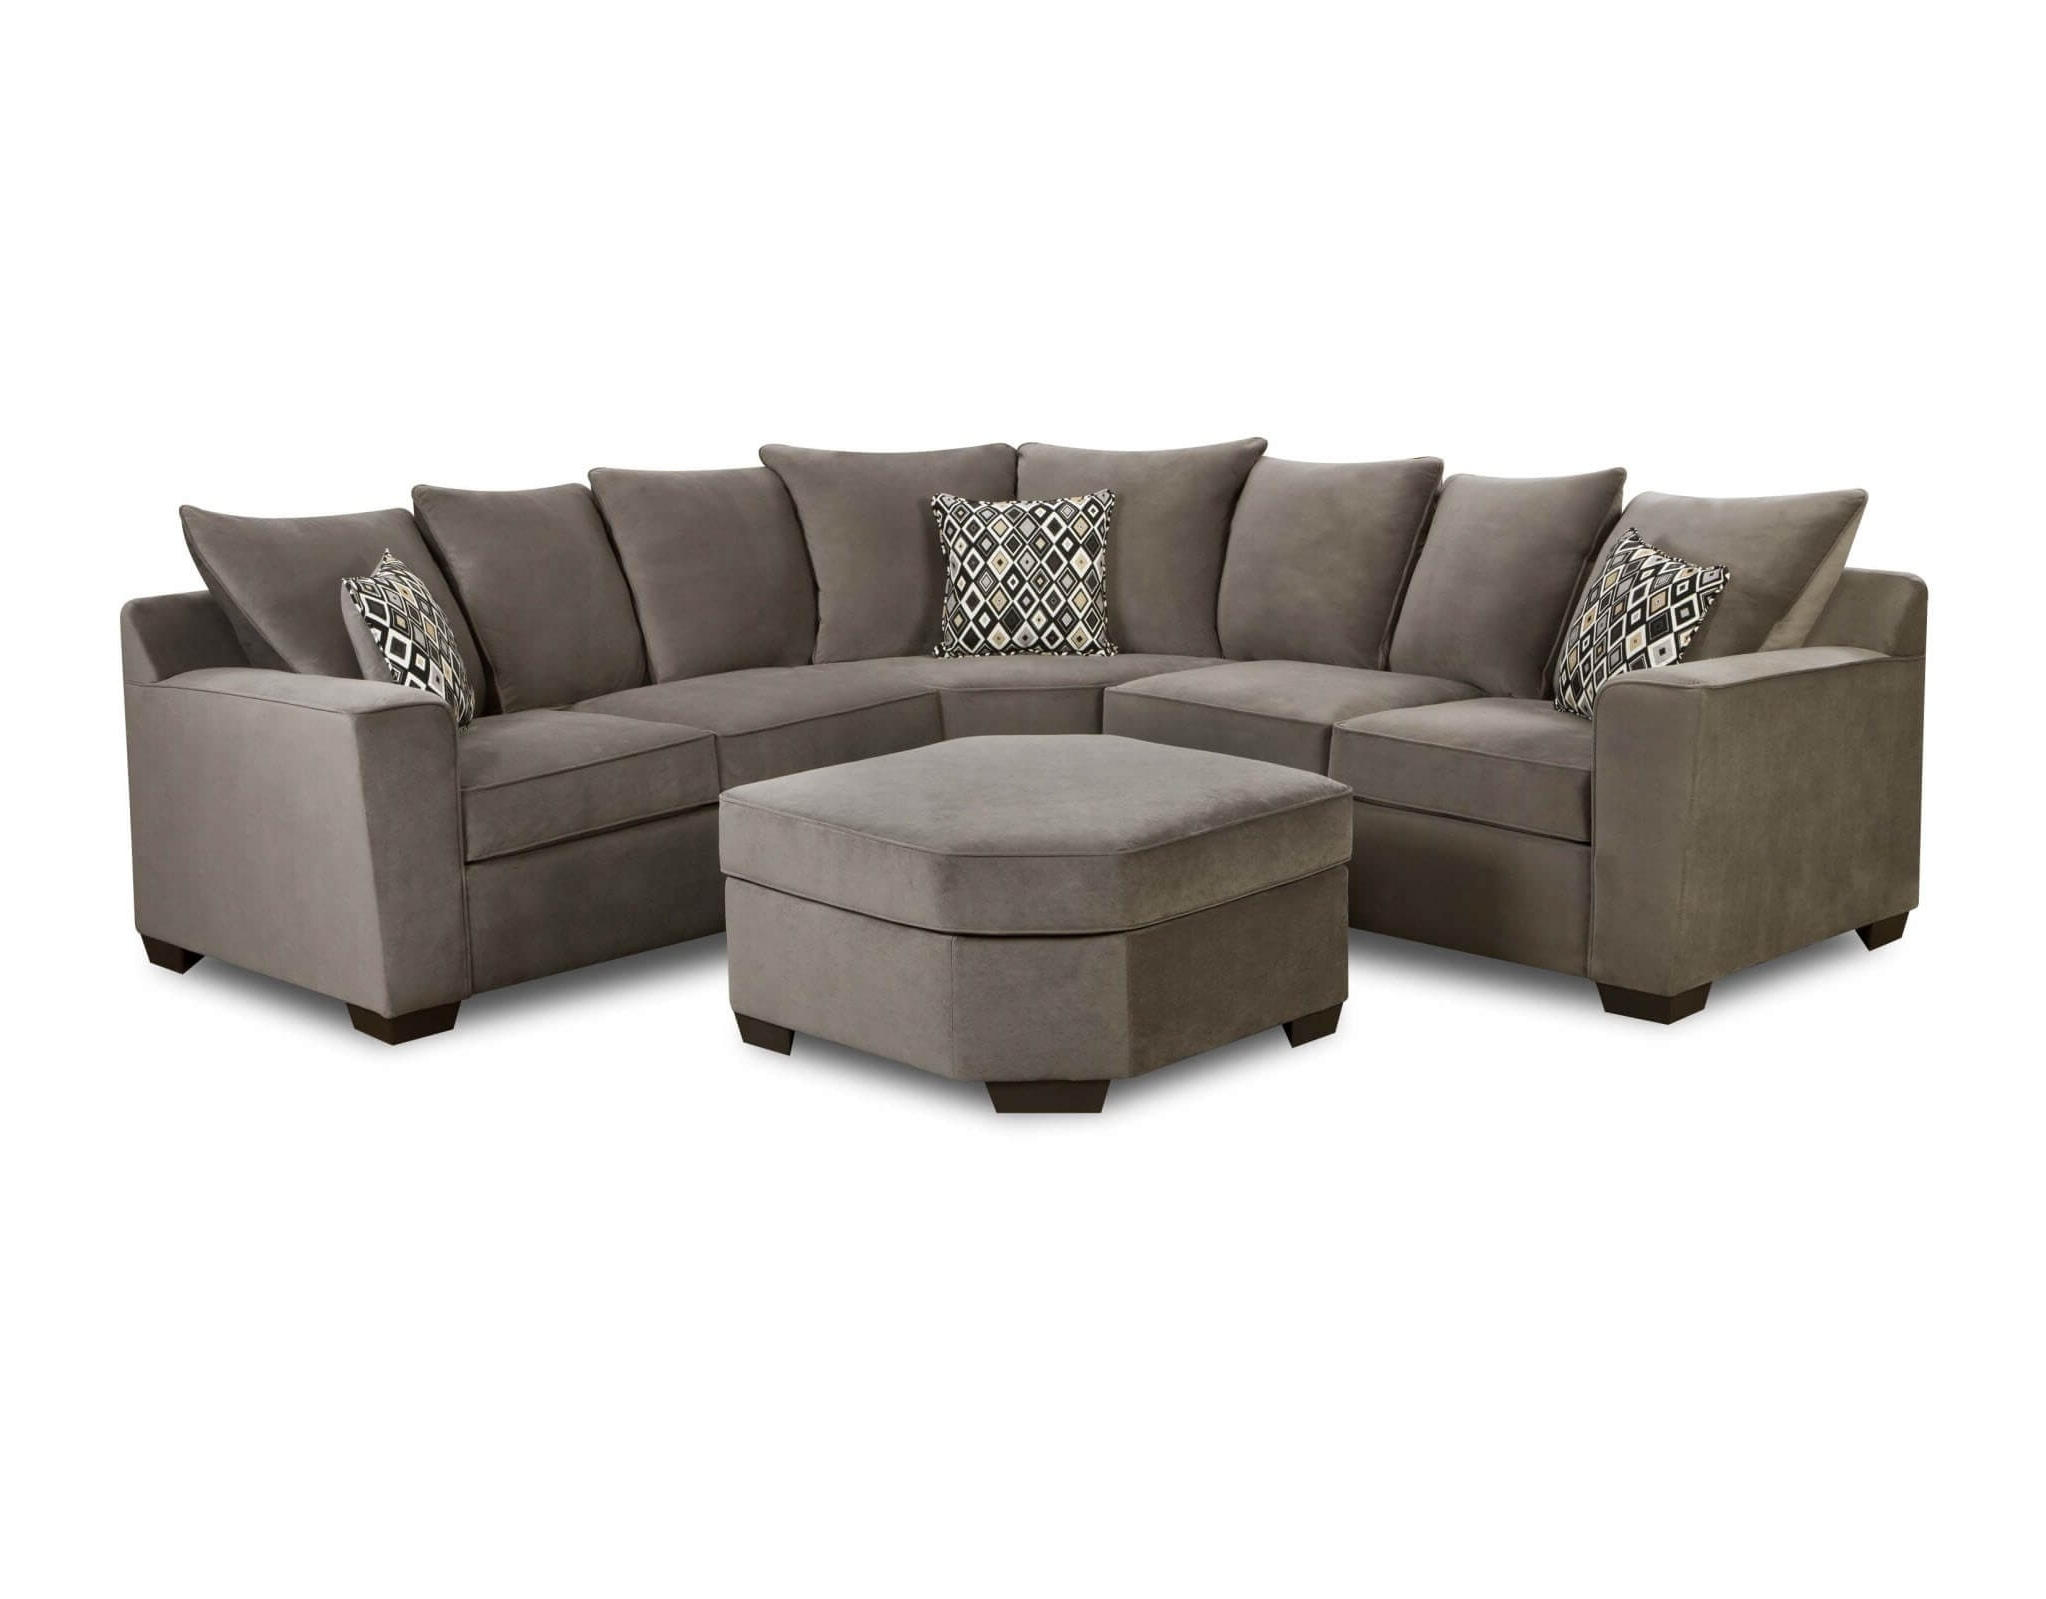 Simmons Roxanne Gunsmoke Sectional (View 12 of 15)